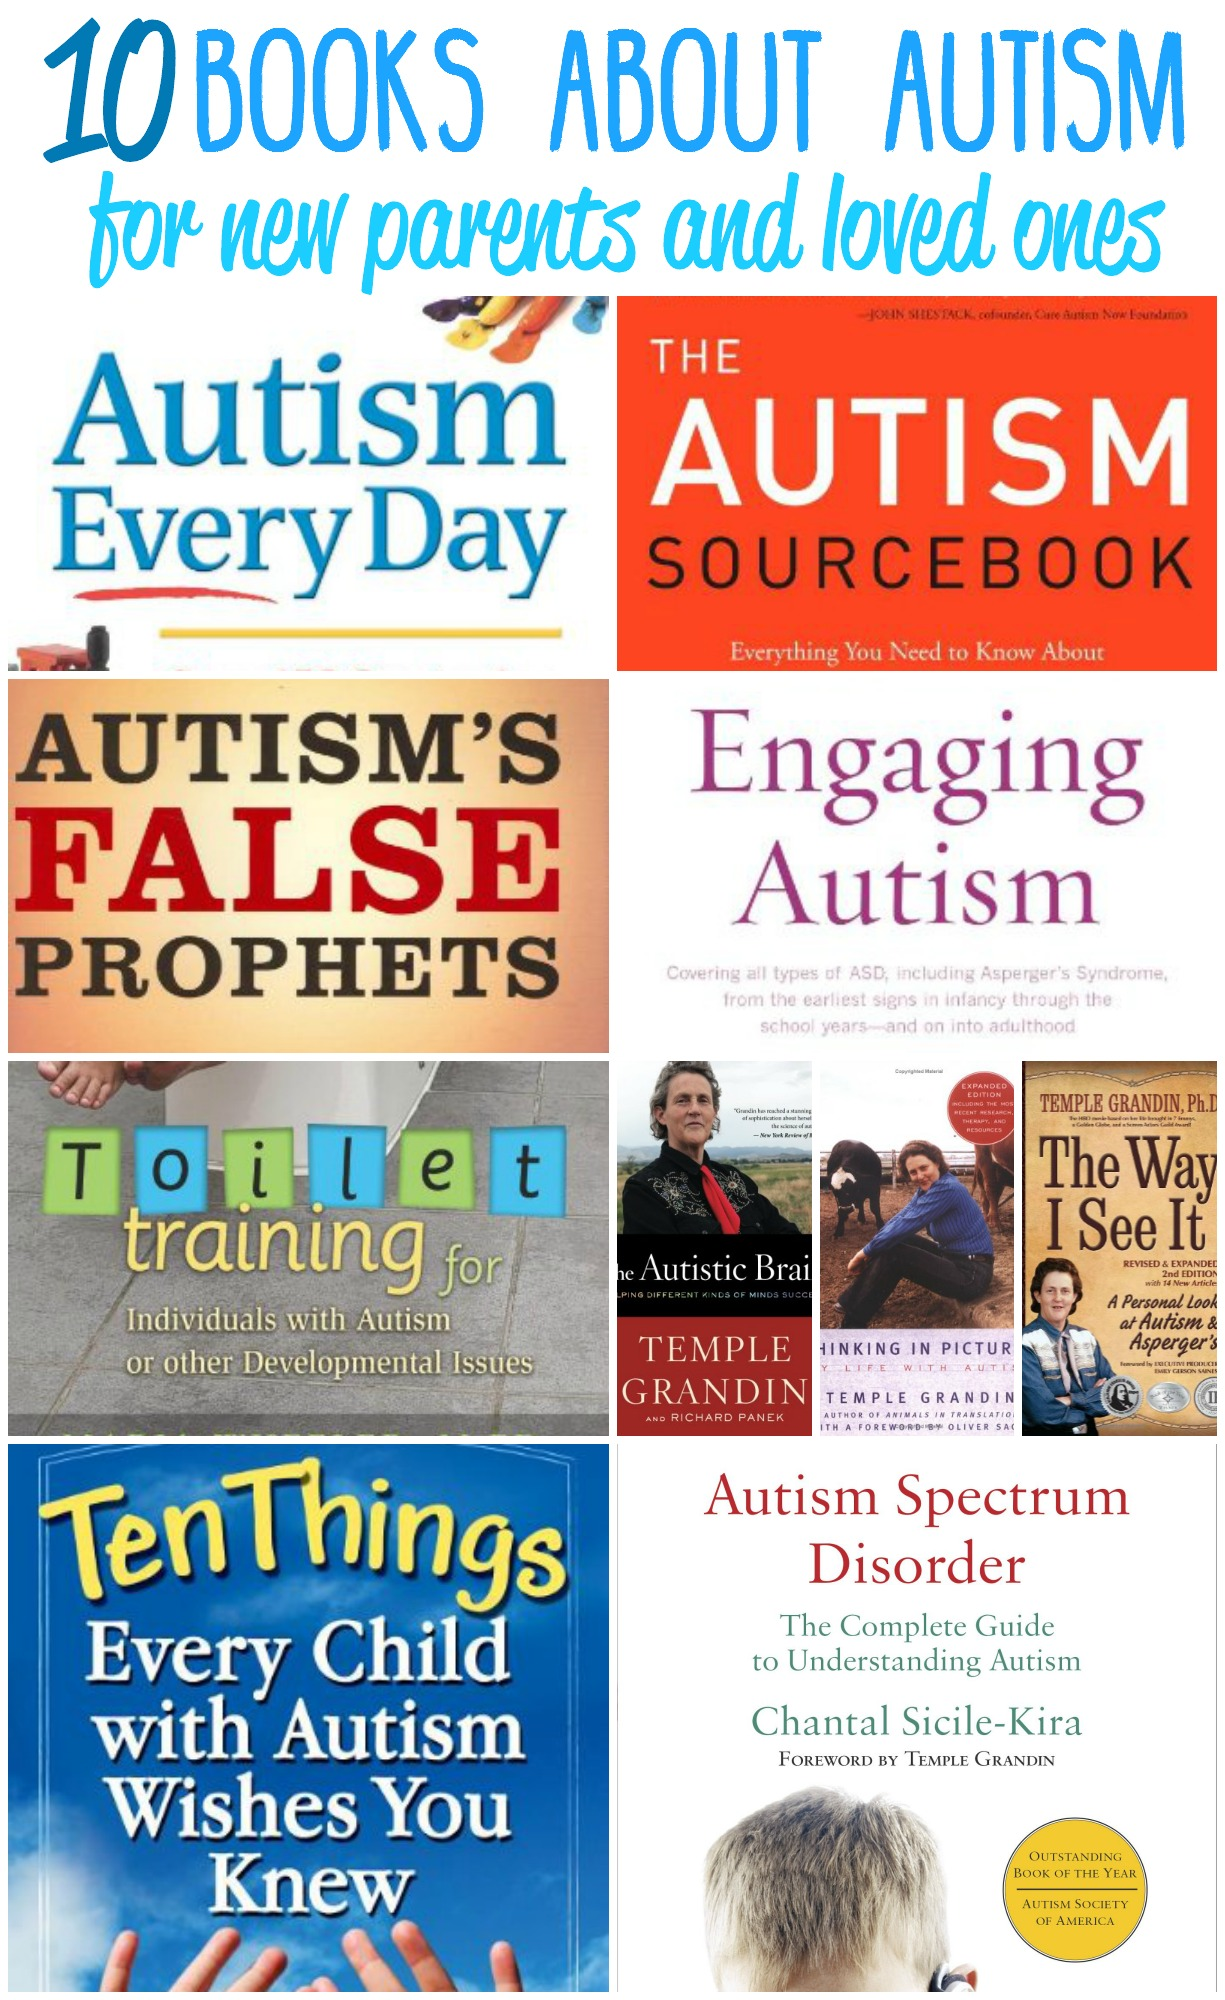 Do you have a child that was recently diagnosed with autism? Or maybe you have a family member that does? Take some time to take a look at my personal picks for top ten books about autism for new parents and loved ones.